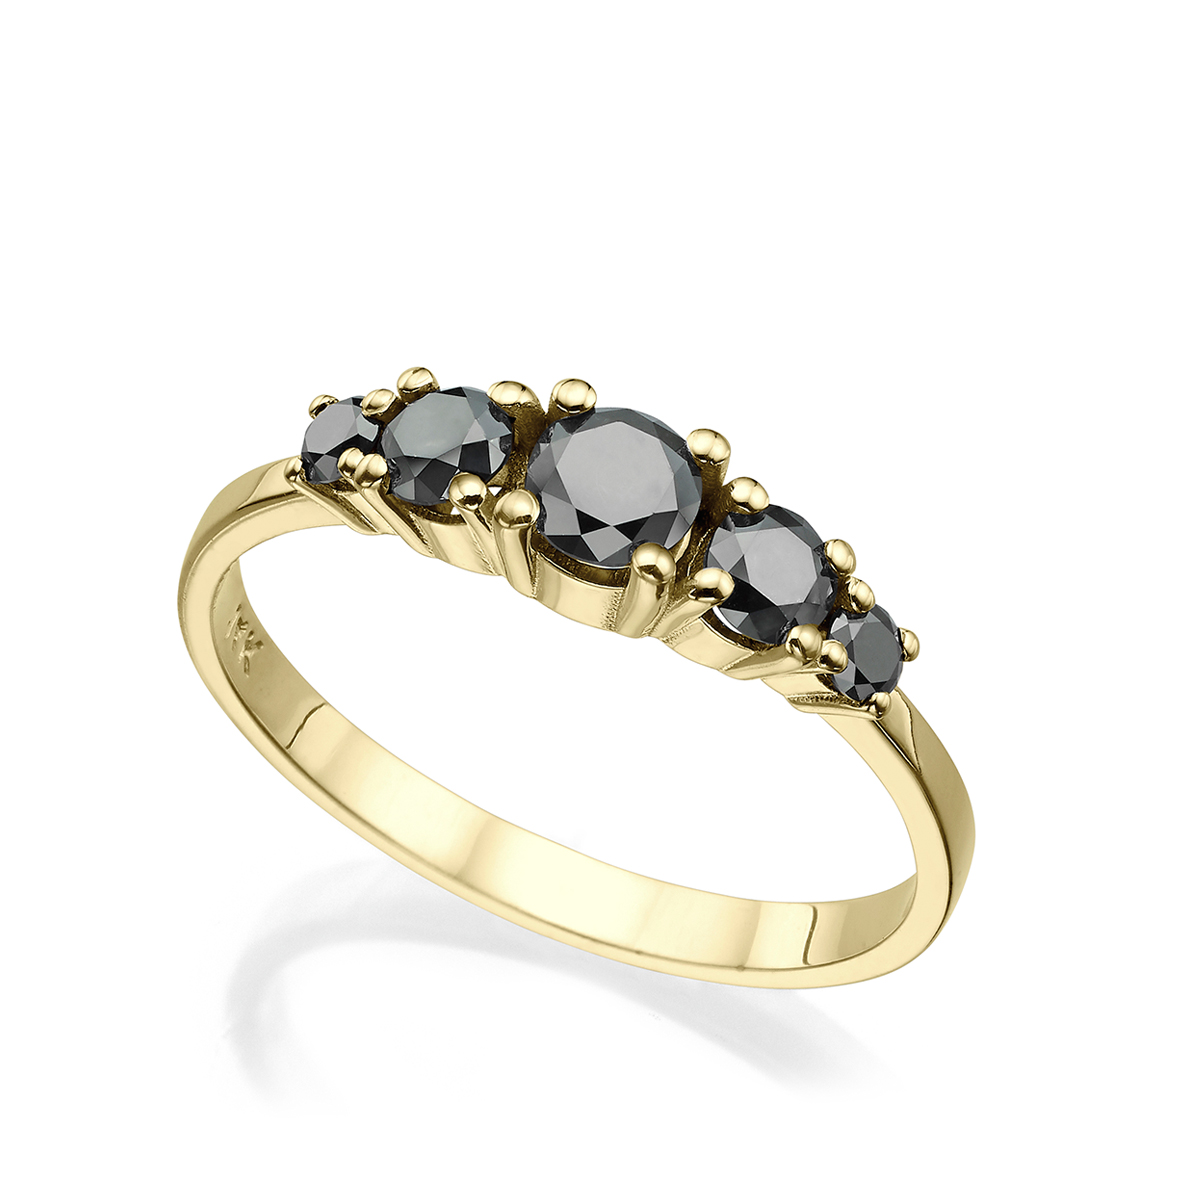 5 Black Diamonds Solid Gold Ring In A Prong Setting – 0.60ct